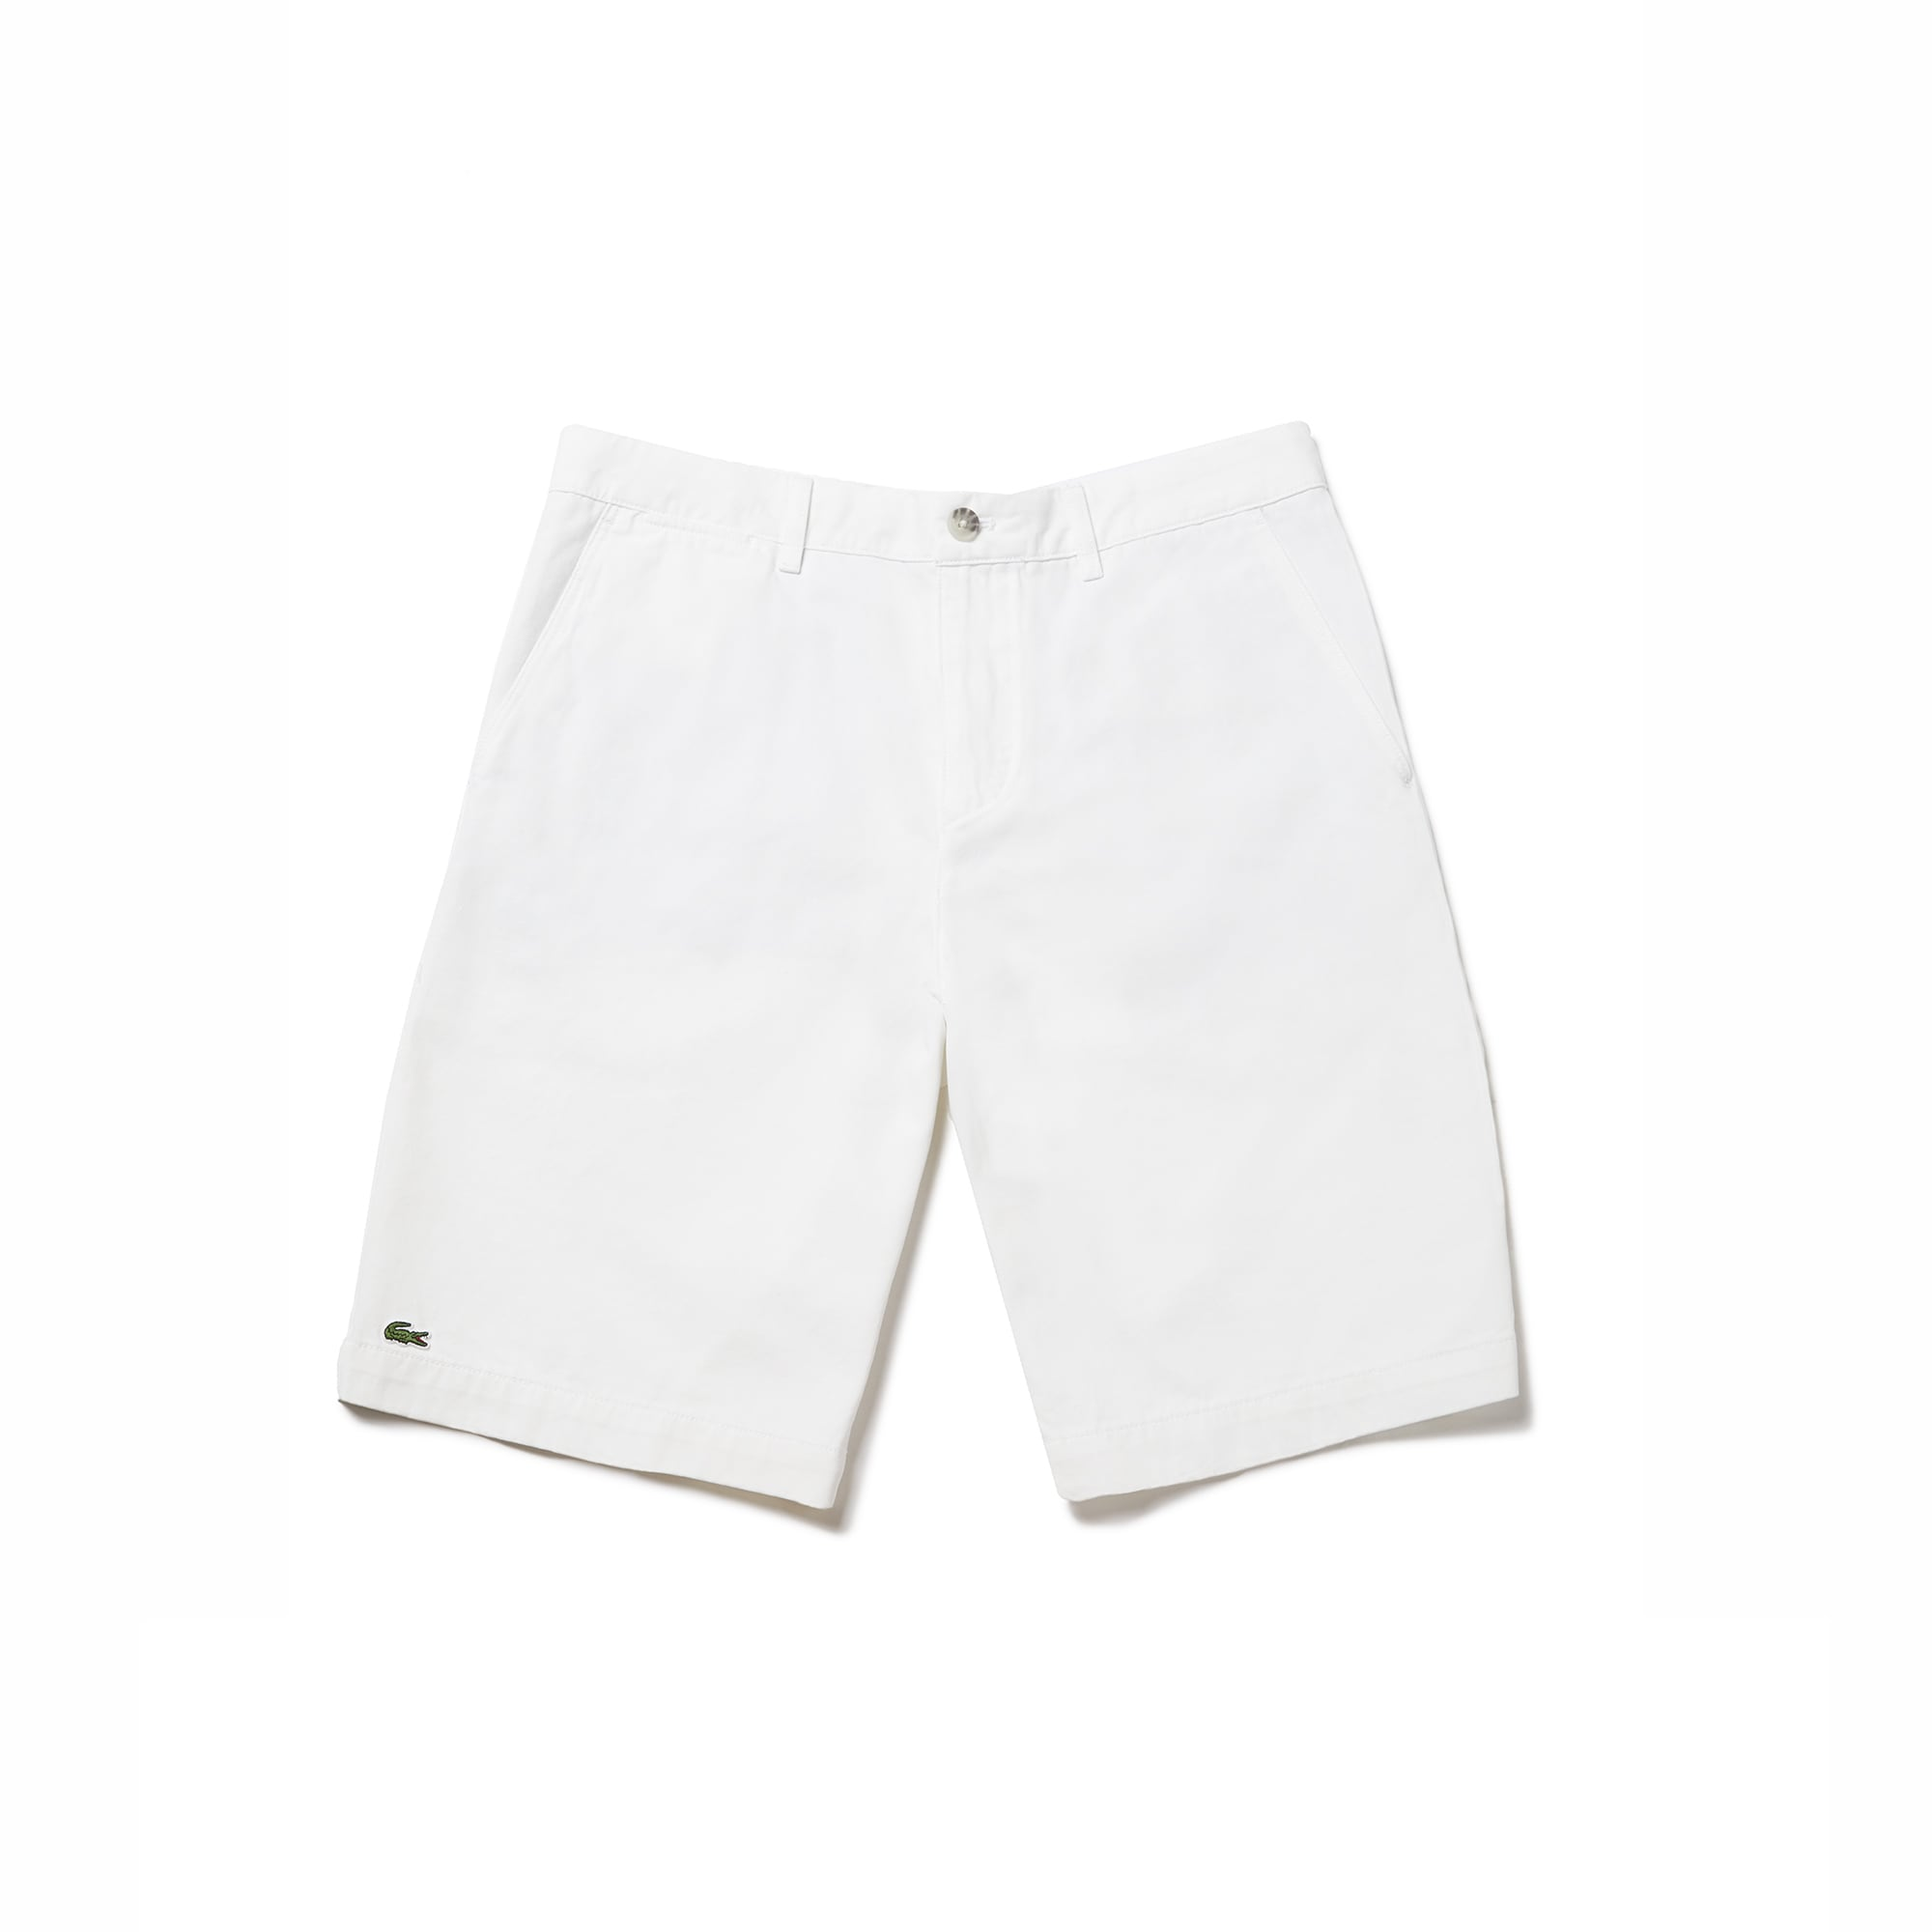 라코스테 반바지 Lacoste Mens Regular Fit Bermuda Shorts,white